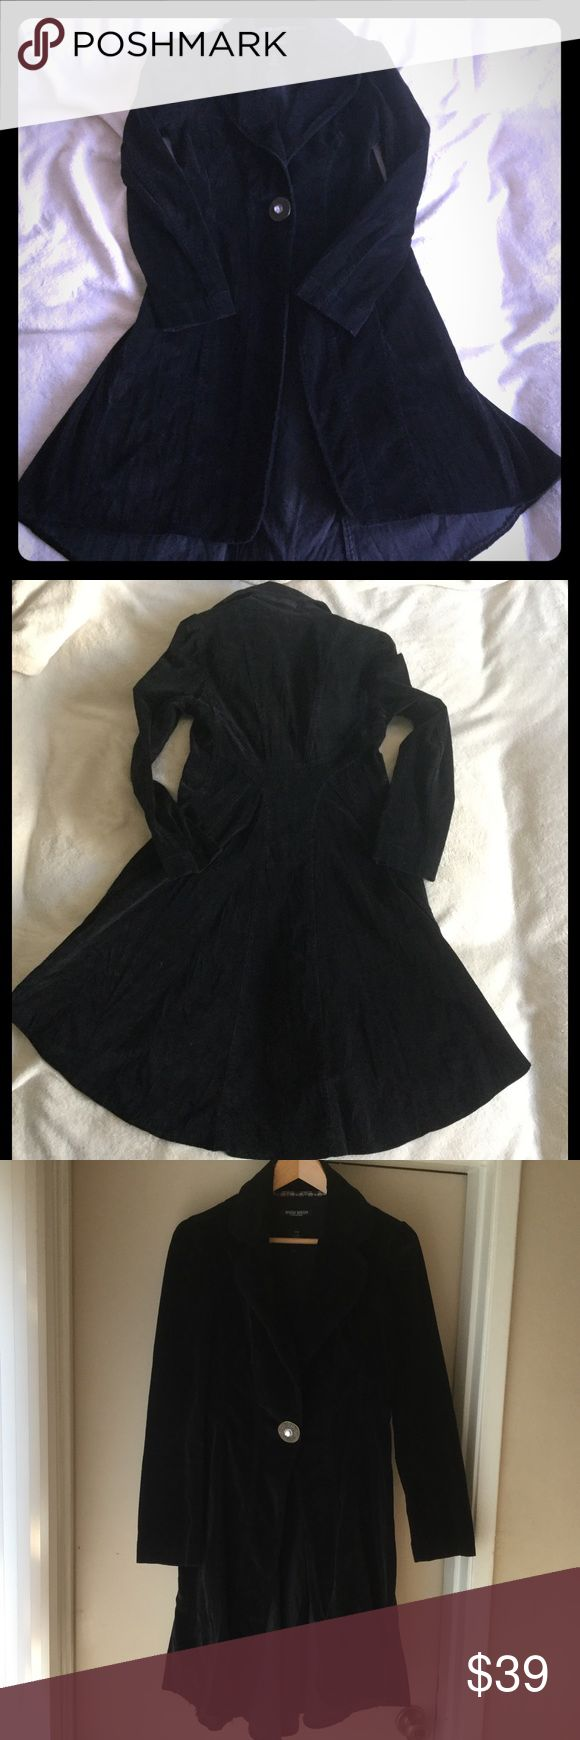 Bisou Bisou coat Worn a couple of times, black coat, stretch fabric. Longer in the back, very flattering. I love it but it's too small for me. Snaps in the front. Great with a dress, jeans or anything else. The size fit says medium, but fits more like 4-6, so smaller medium. I wore this at 135 lbs, I am 5'7. Bisou Bisou Jackets & Coats